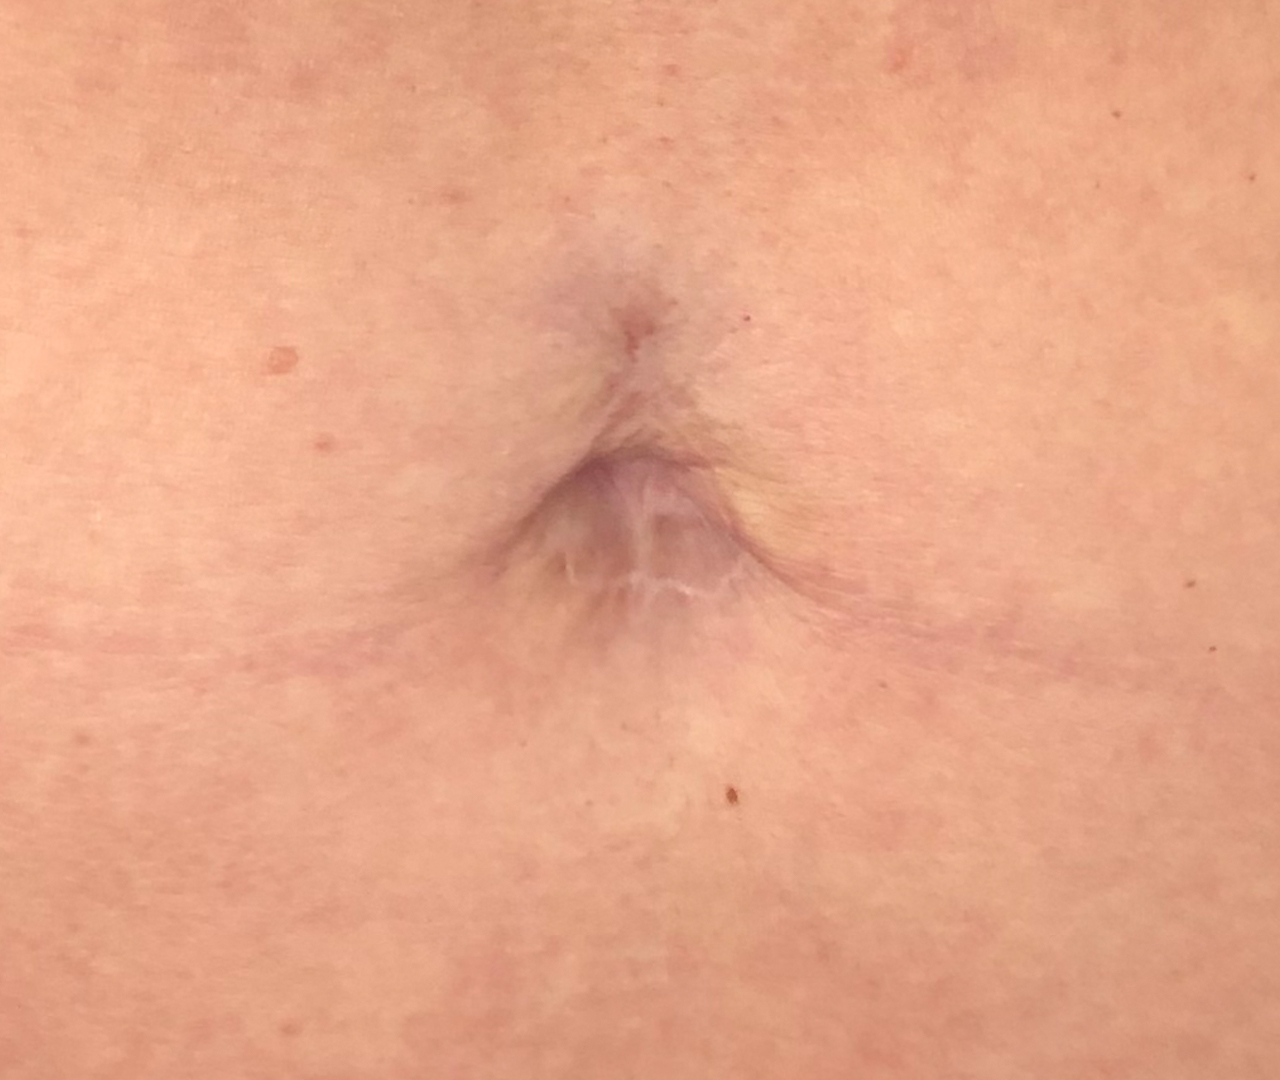 Belly Button Revision 2